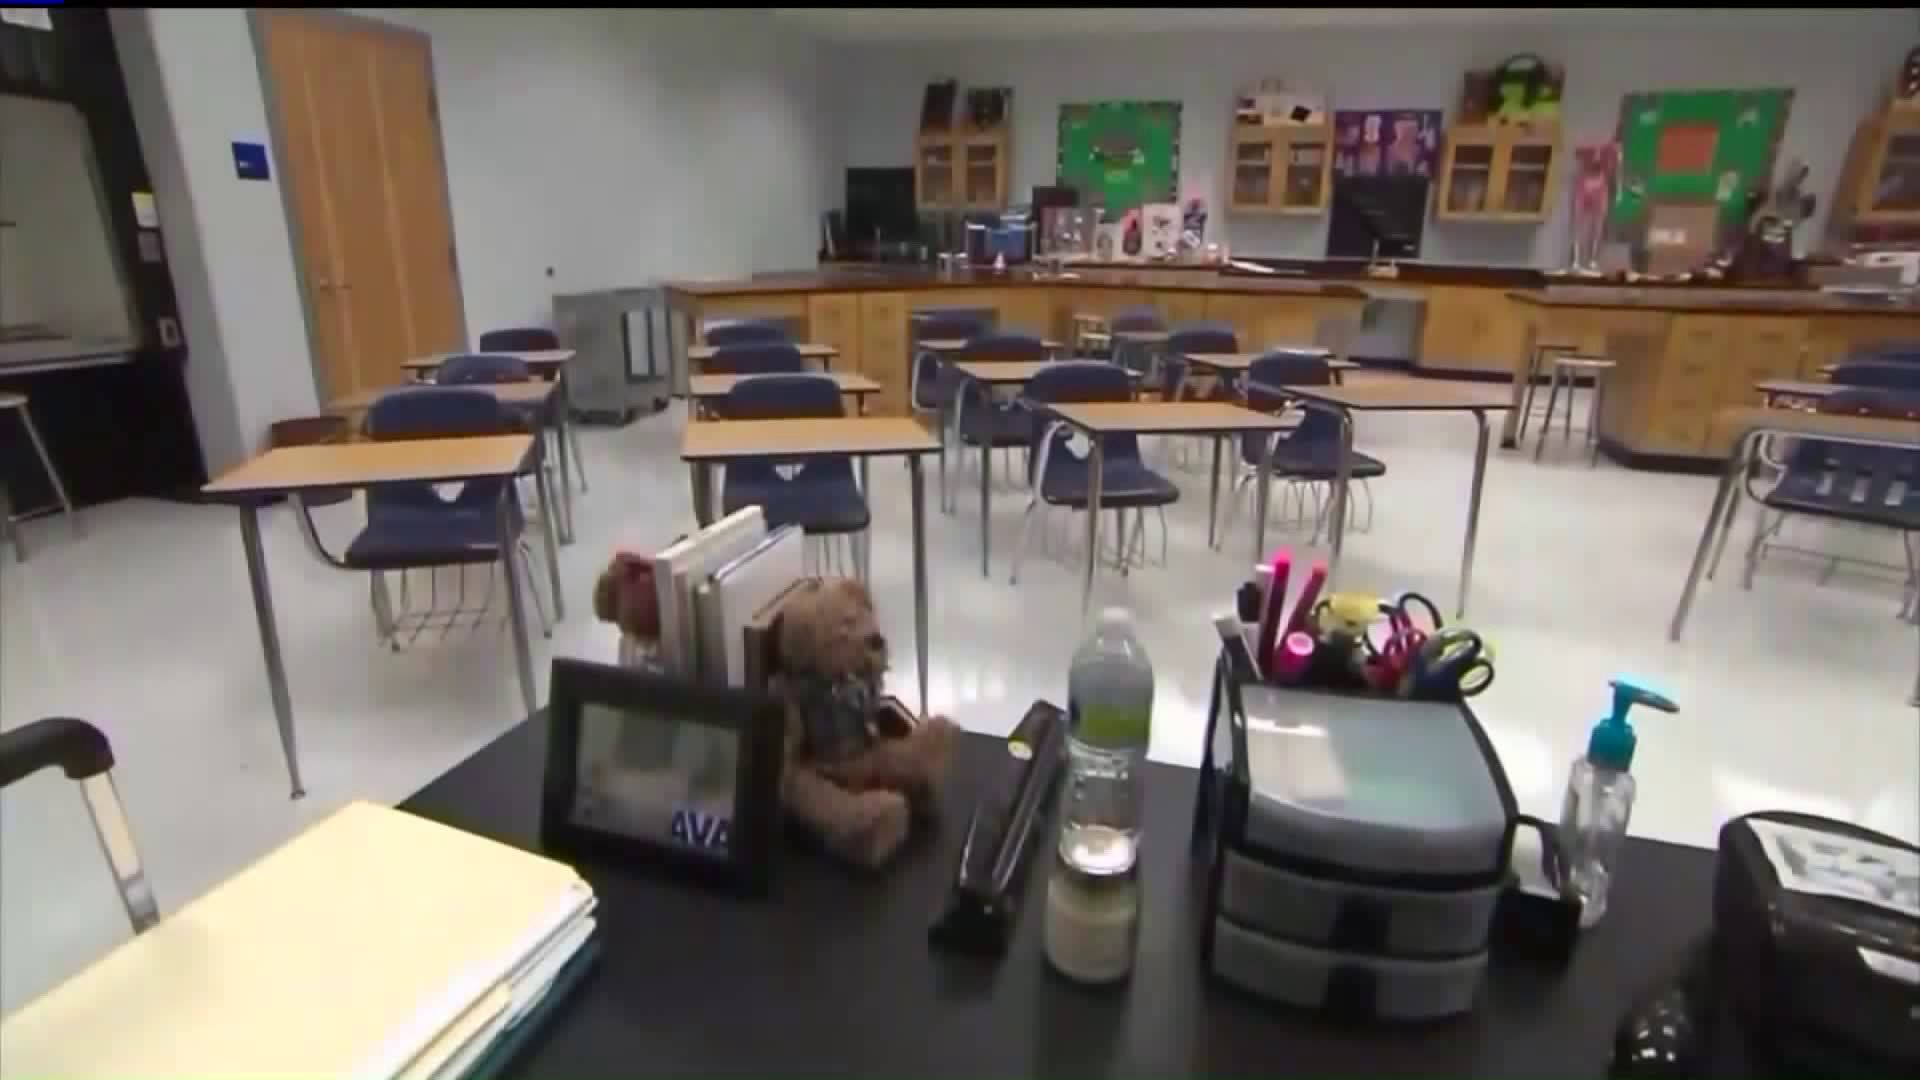 Students in Chesapeake may return to in-person learning in September